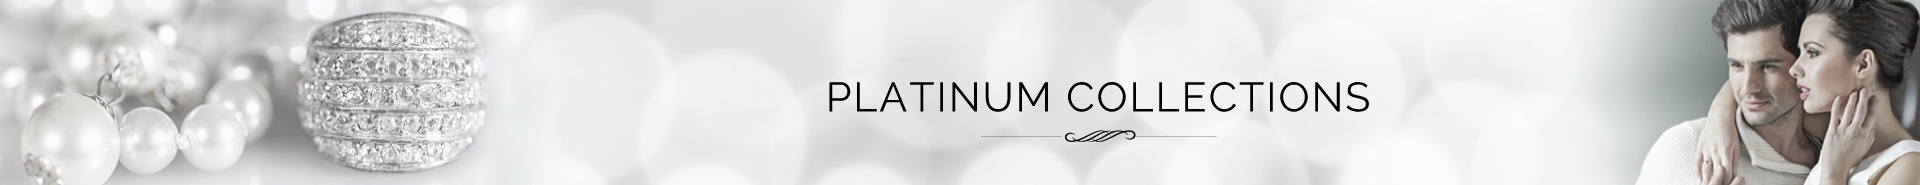 PLATINUM COLLECTIONS